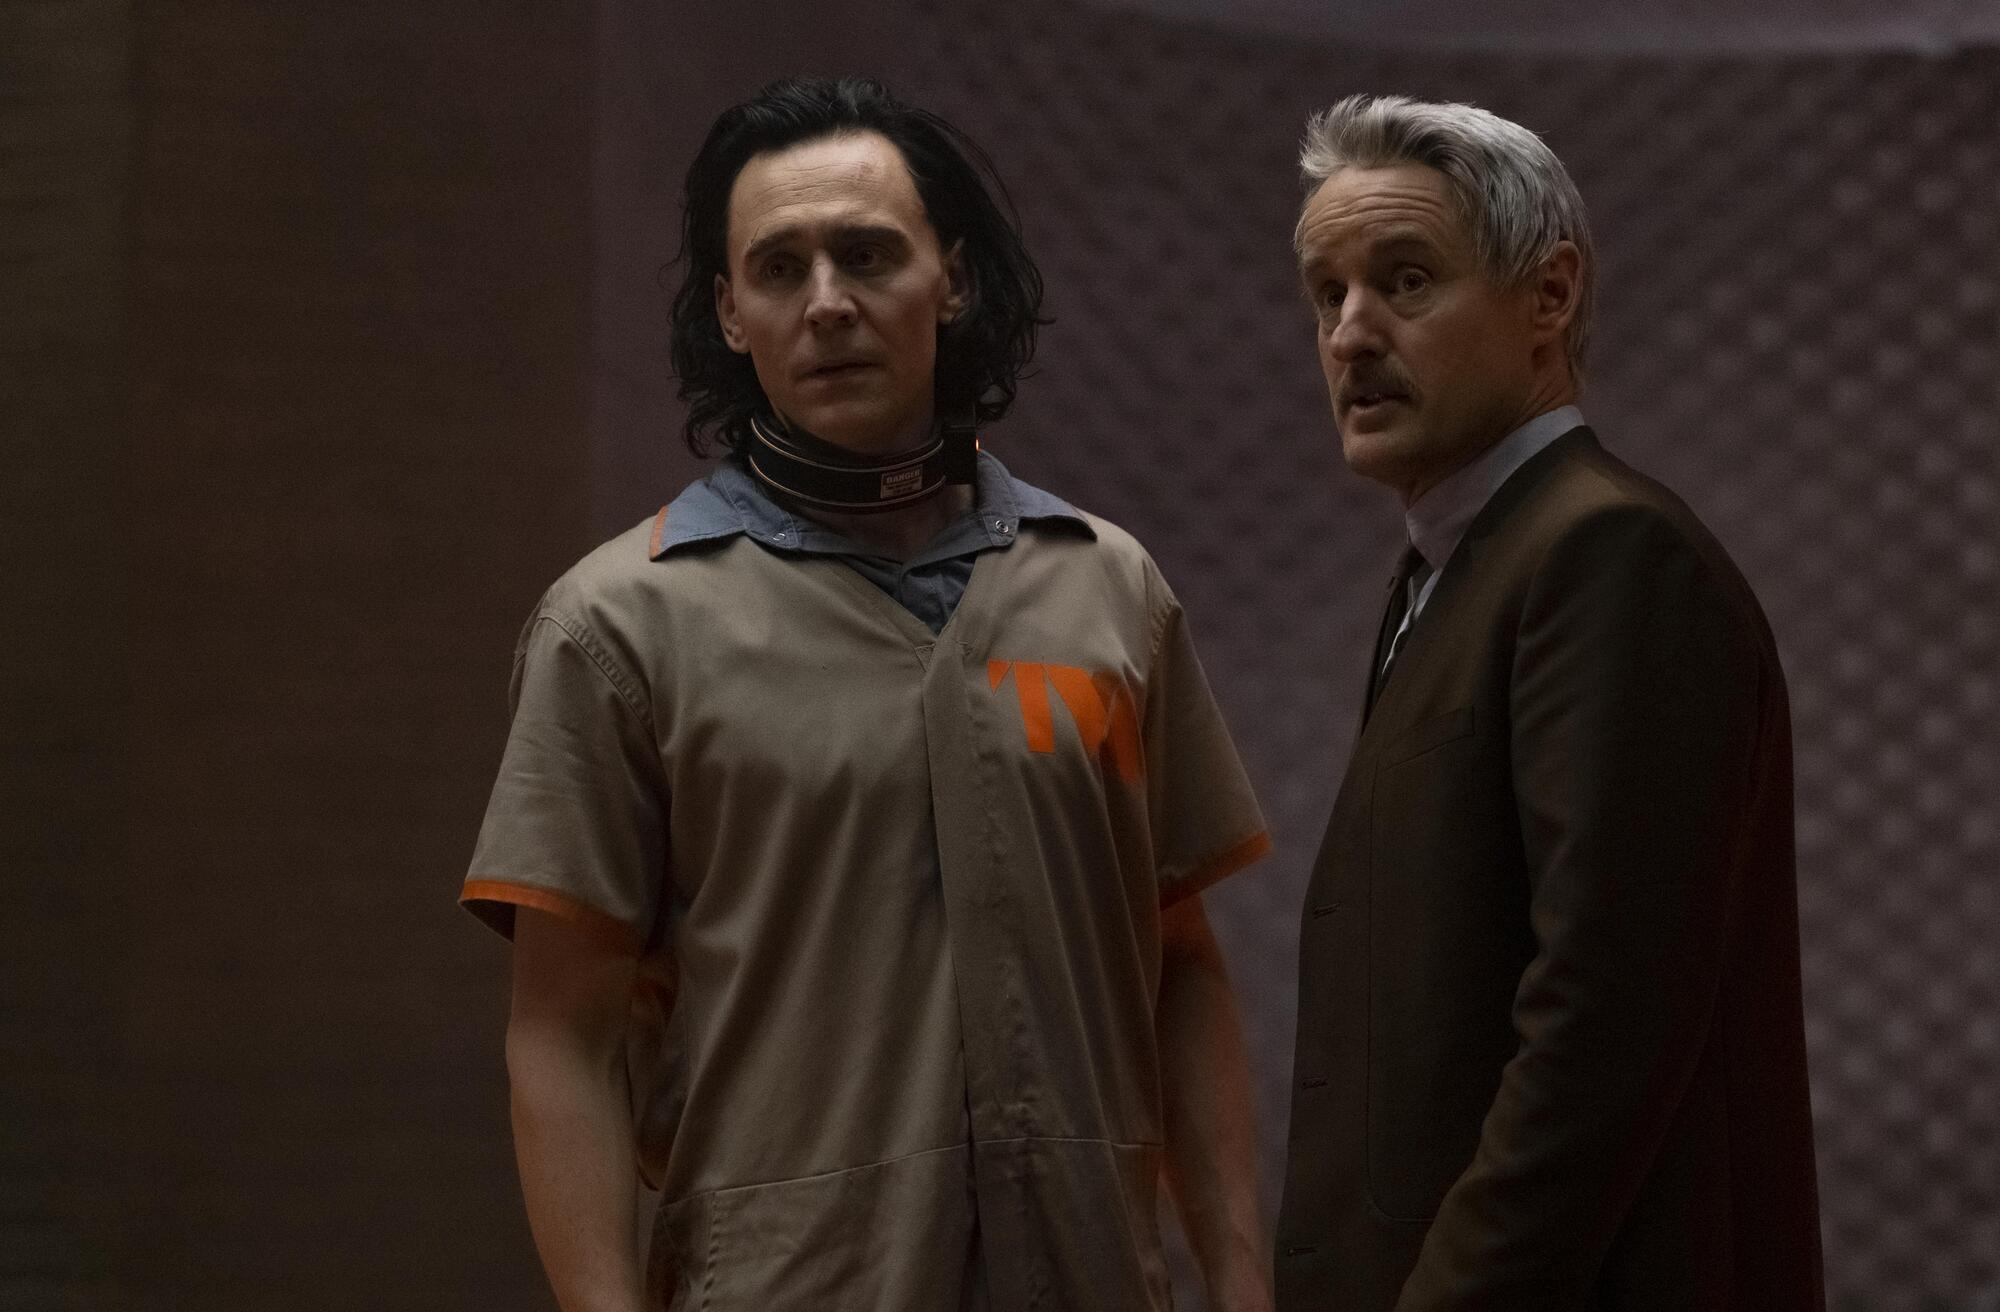 Tom Hiddleston as Loki and Owen Wilson as Mobius M. Mobius in a still from the 'Loki' TV series